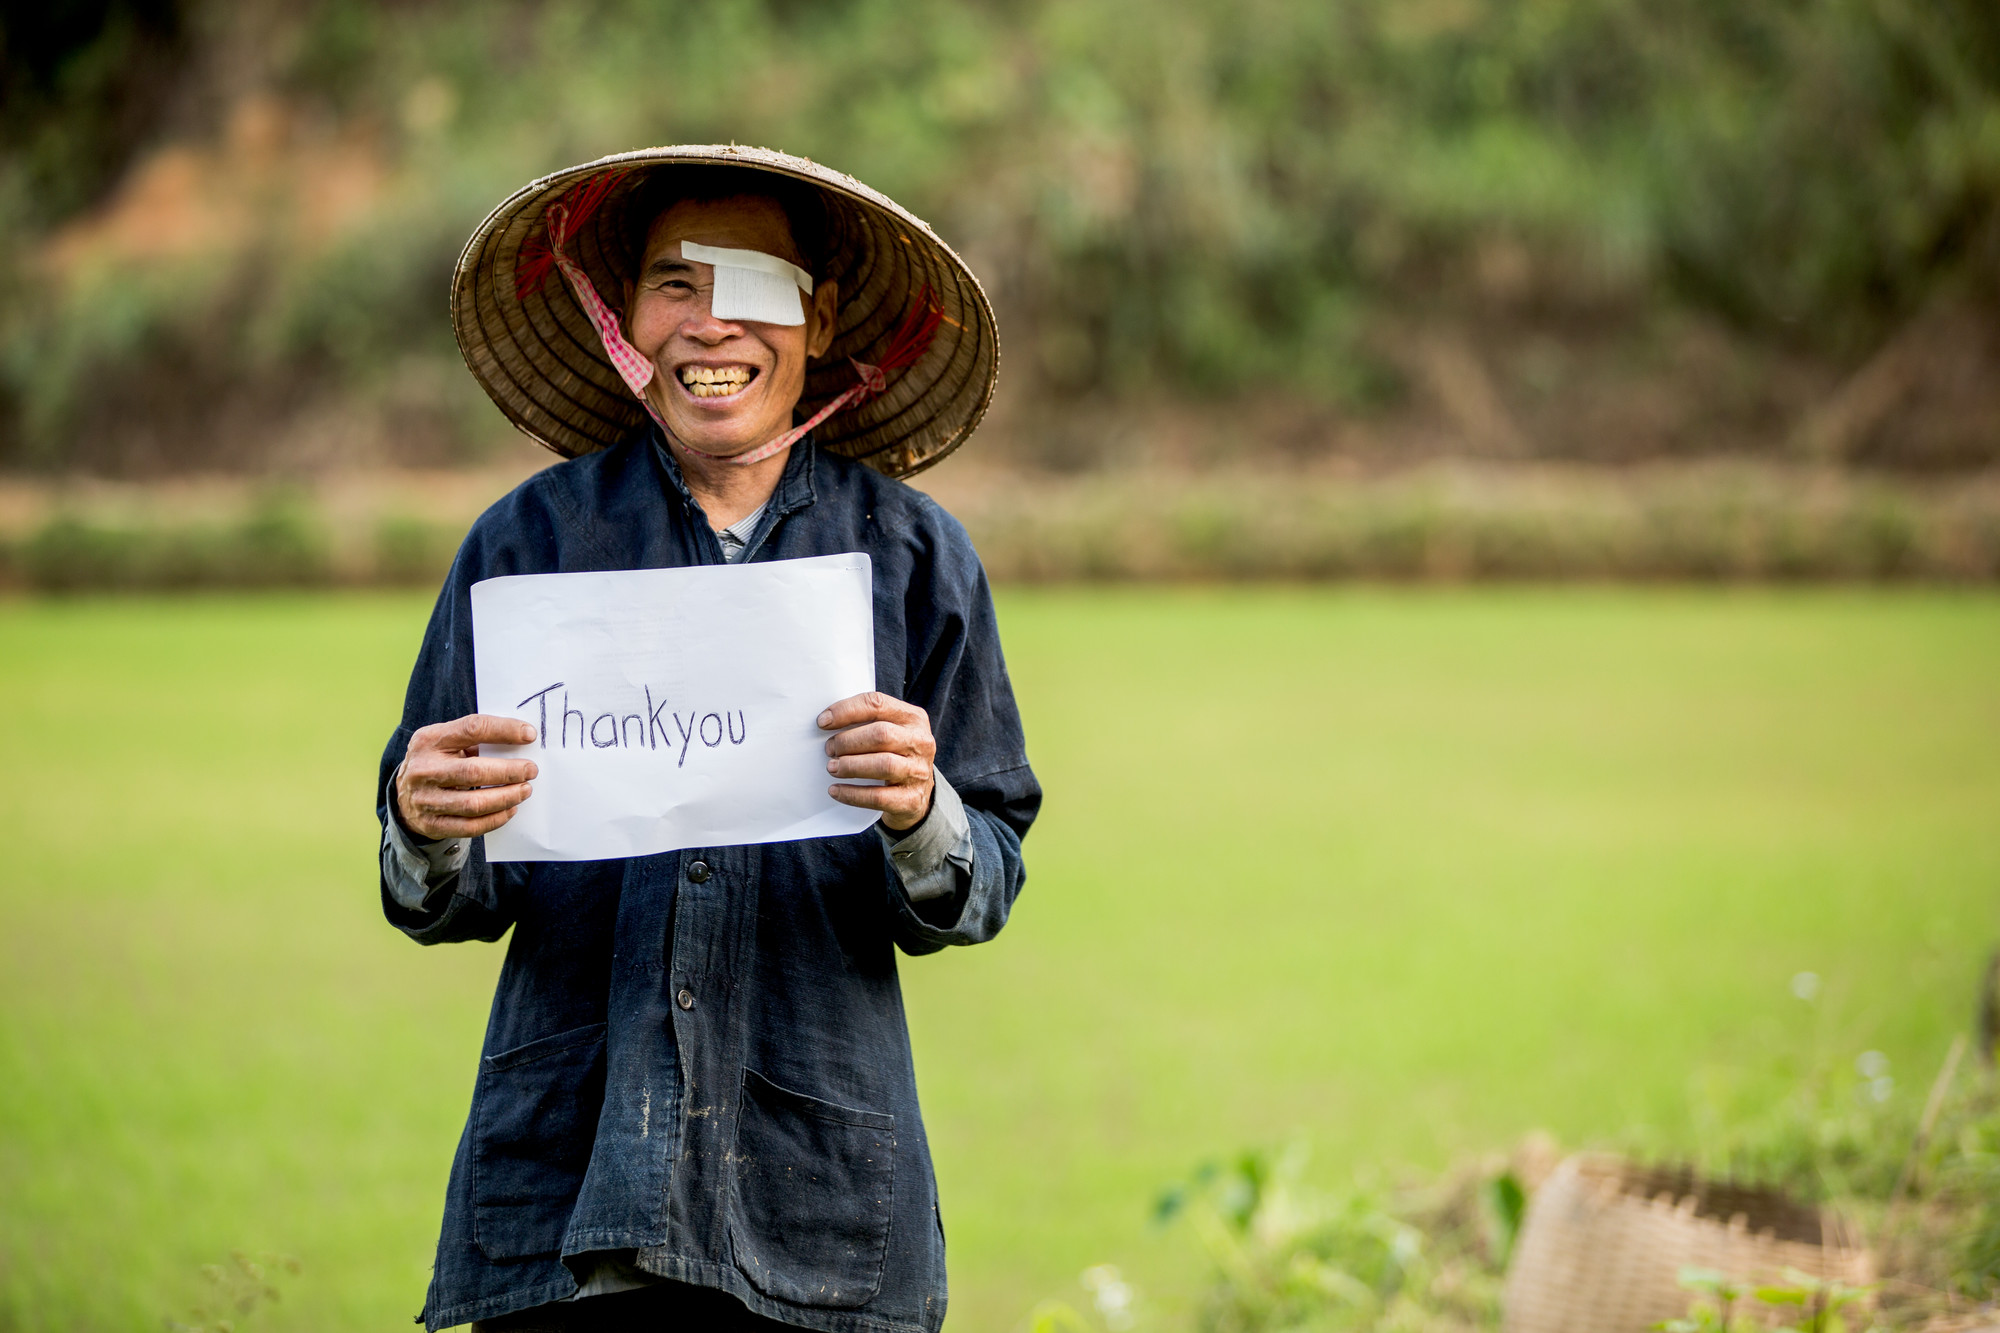 Khut in his field at home, wearing a hat and holding a Thank You sign.